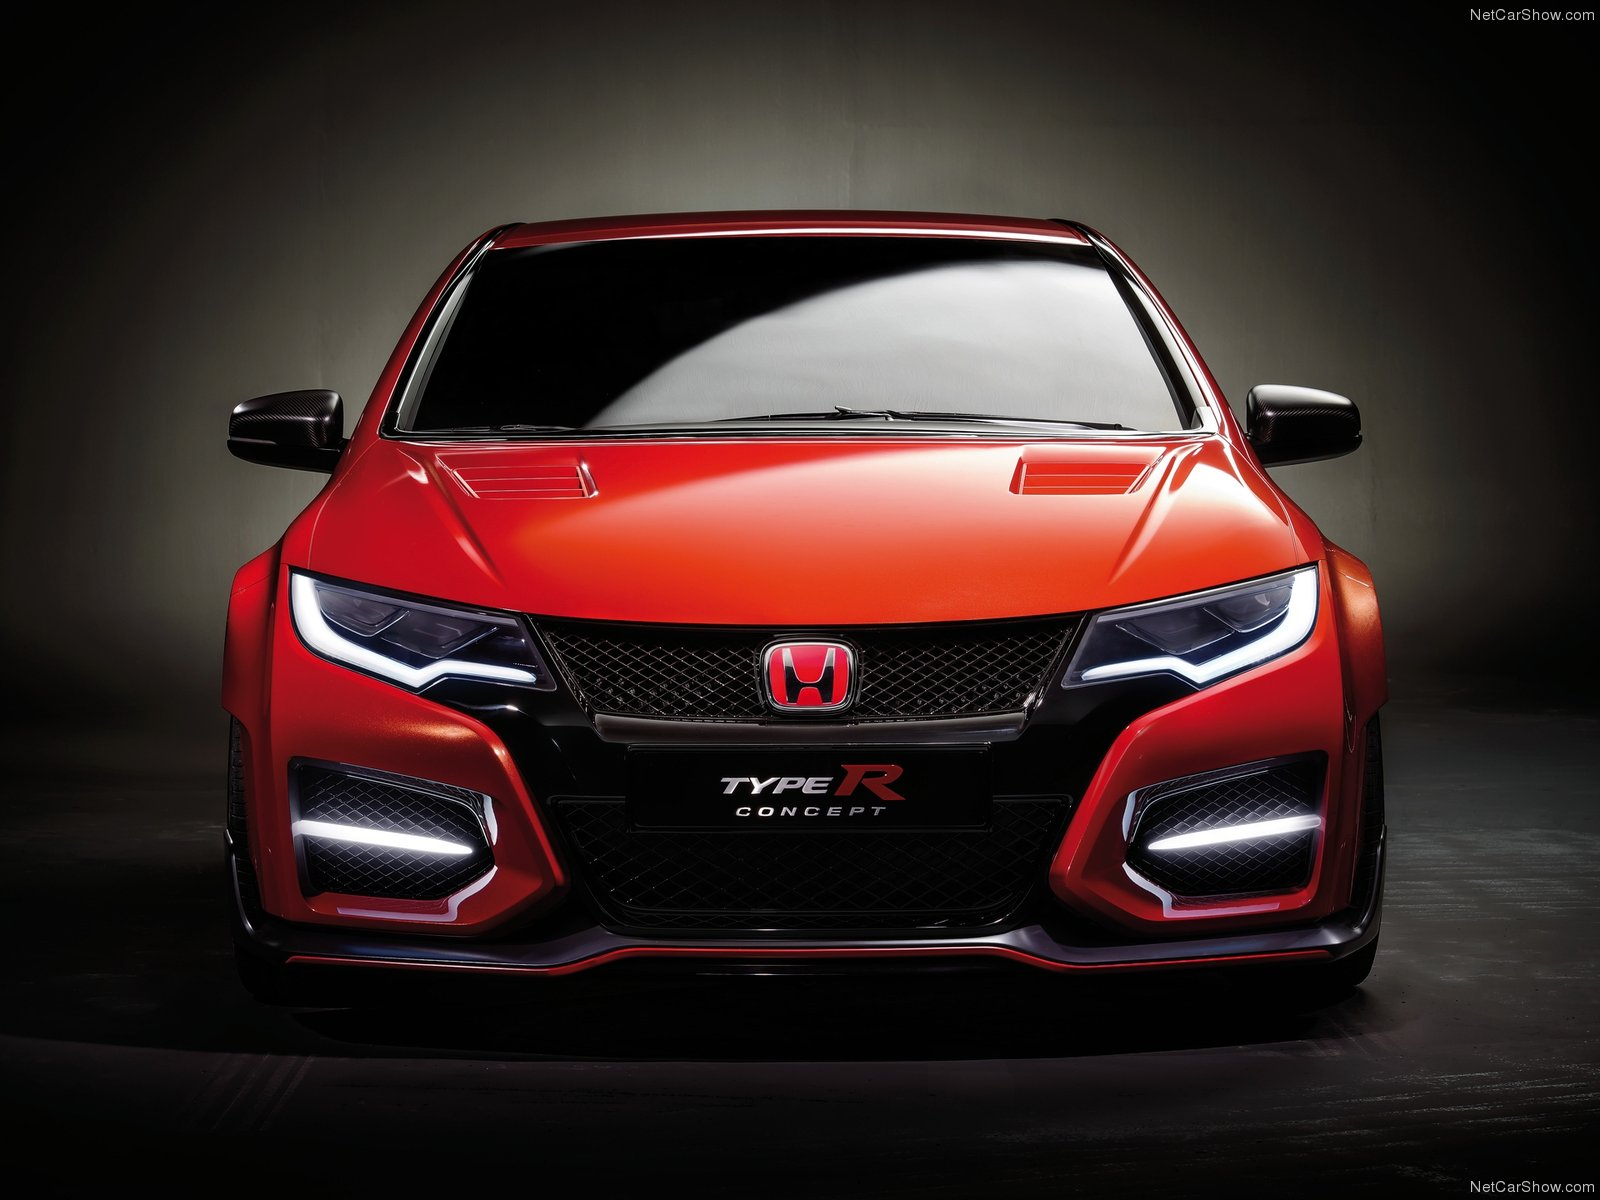 Honda Civic Type R Concept photo 111297